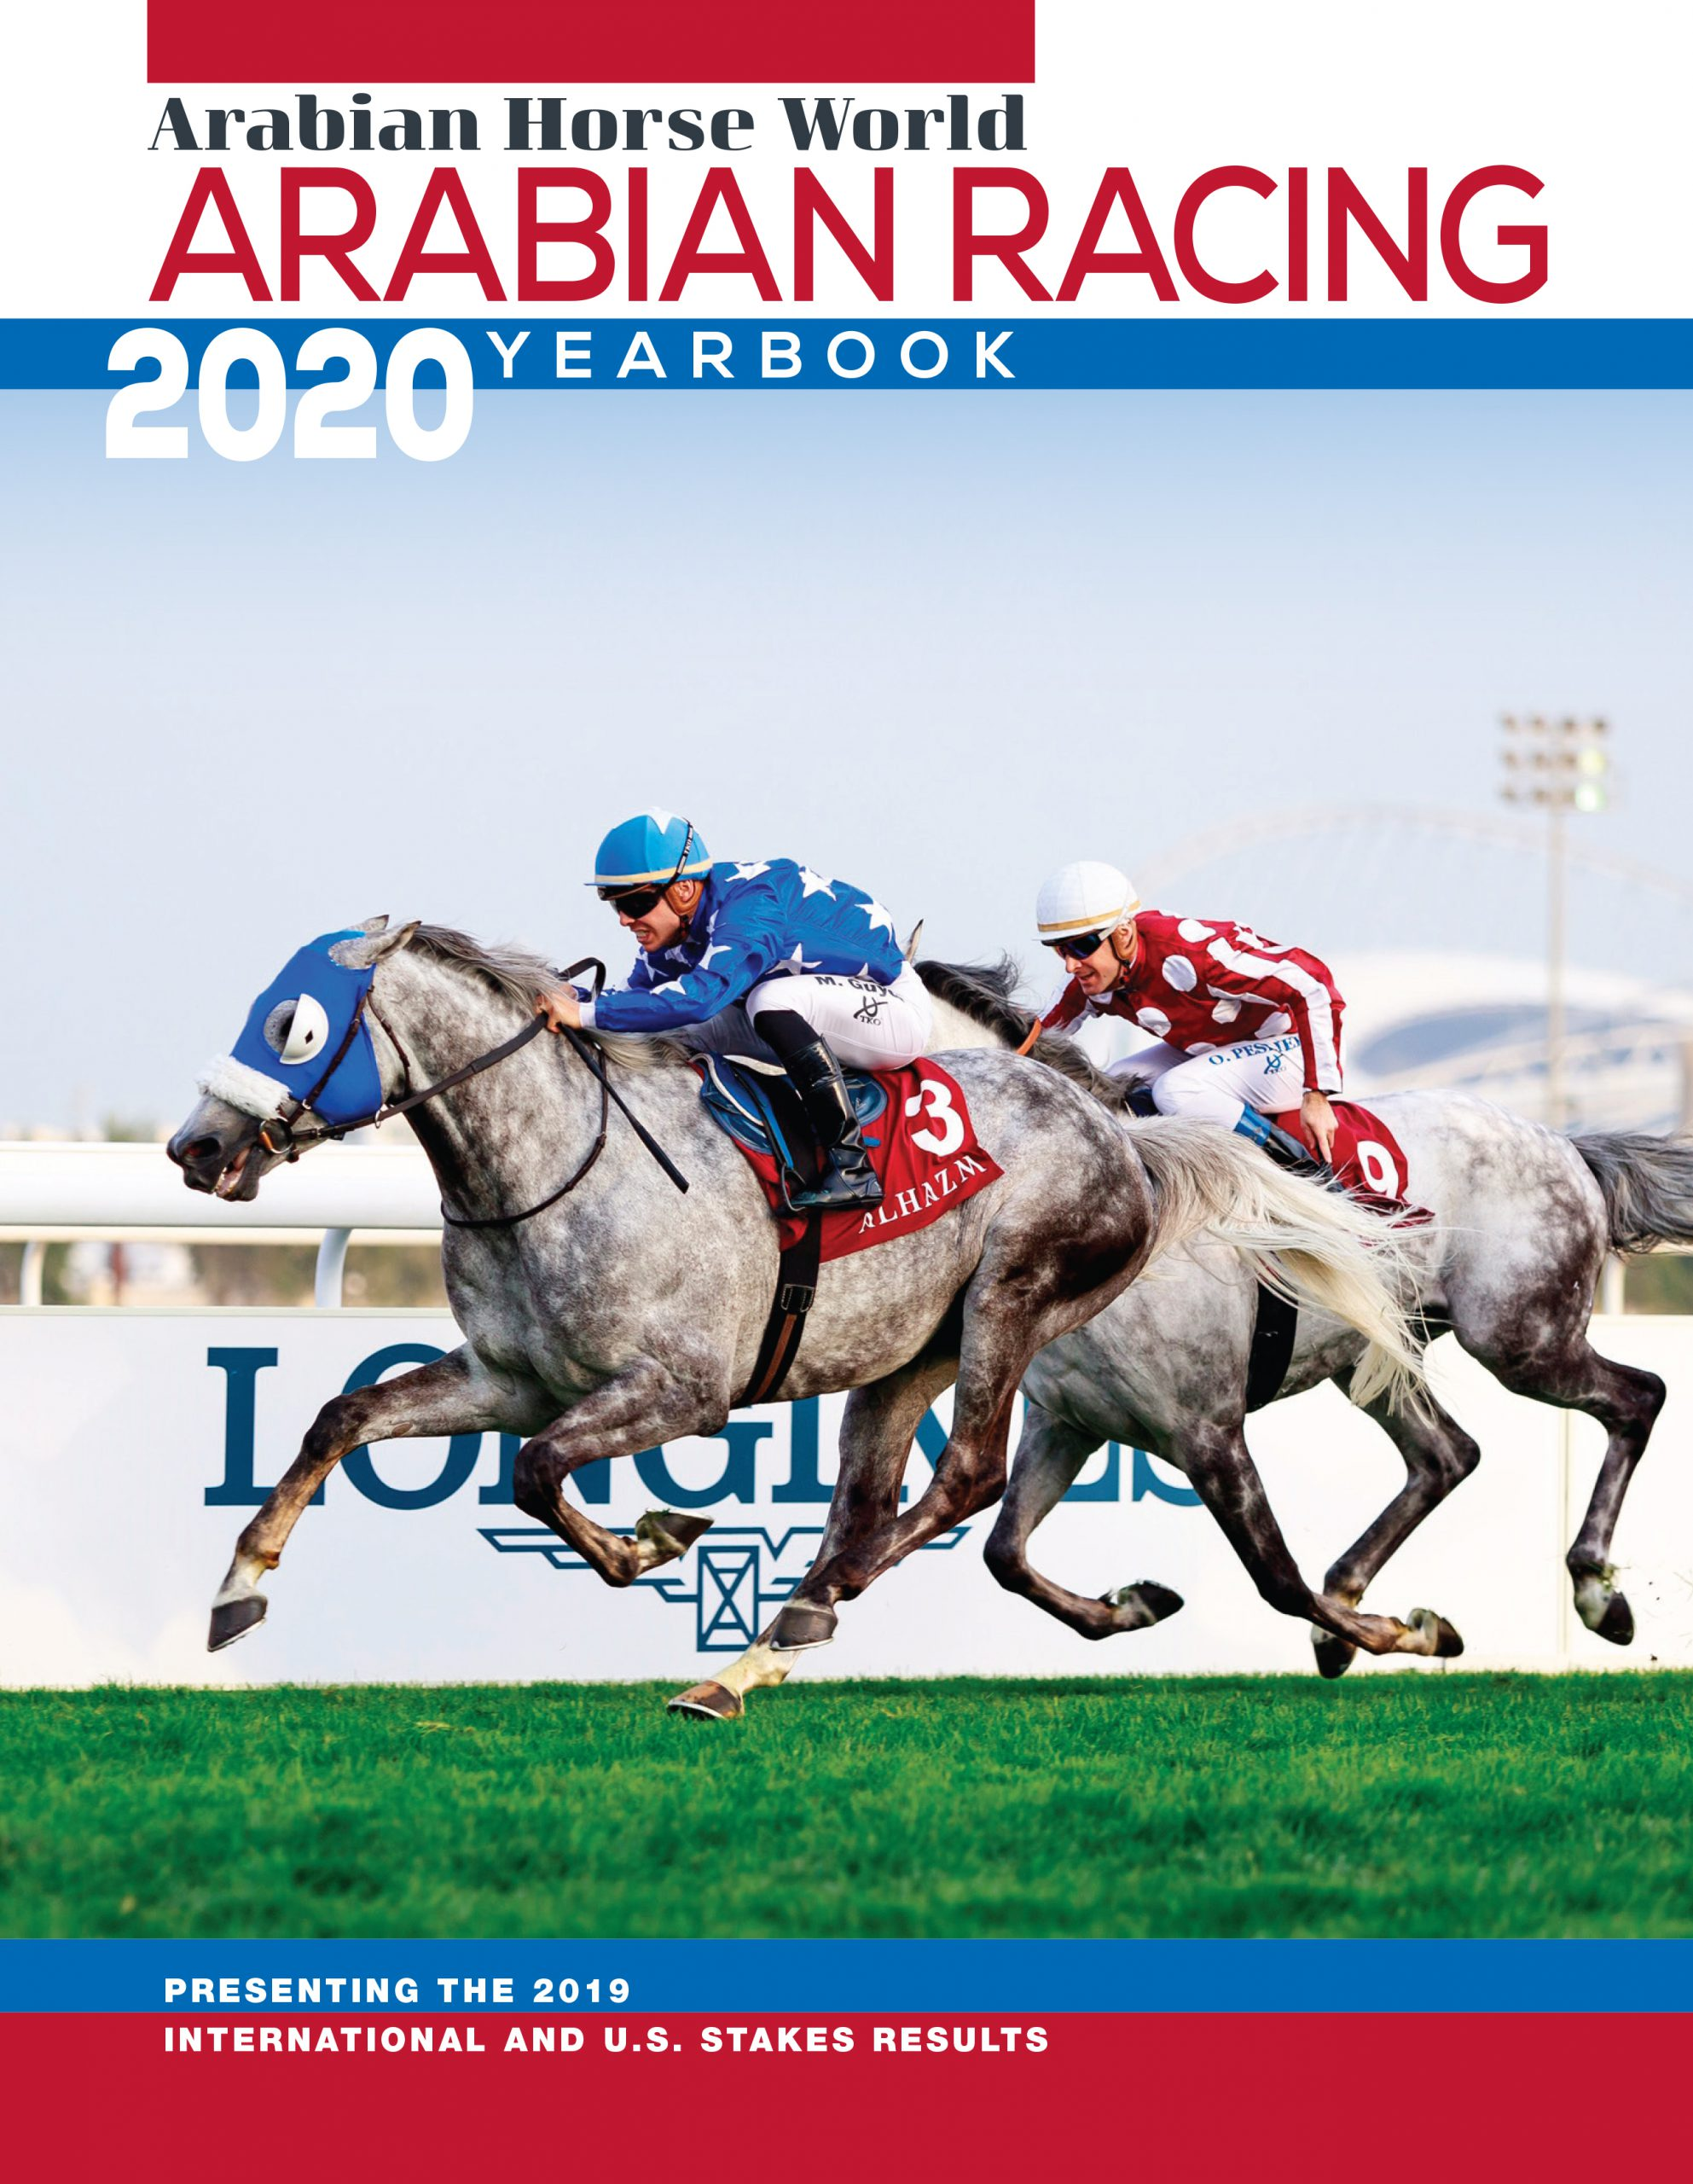 2020 Arabian Racing Yearbook